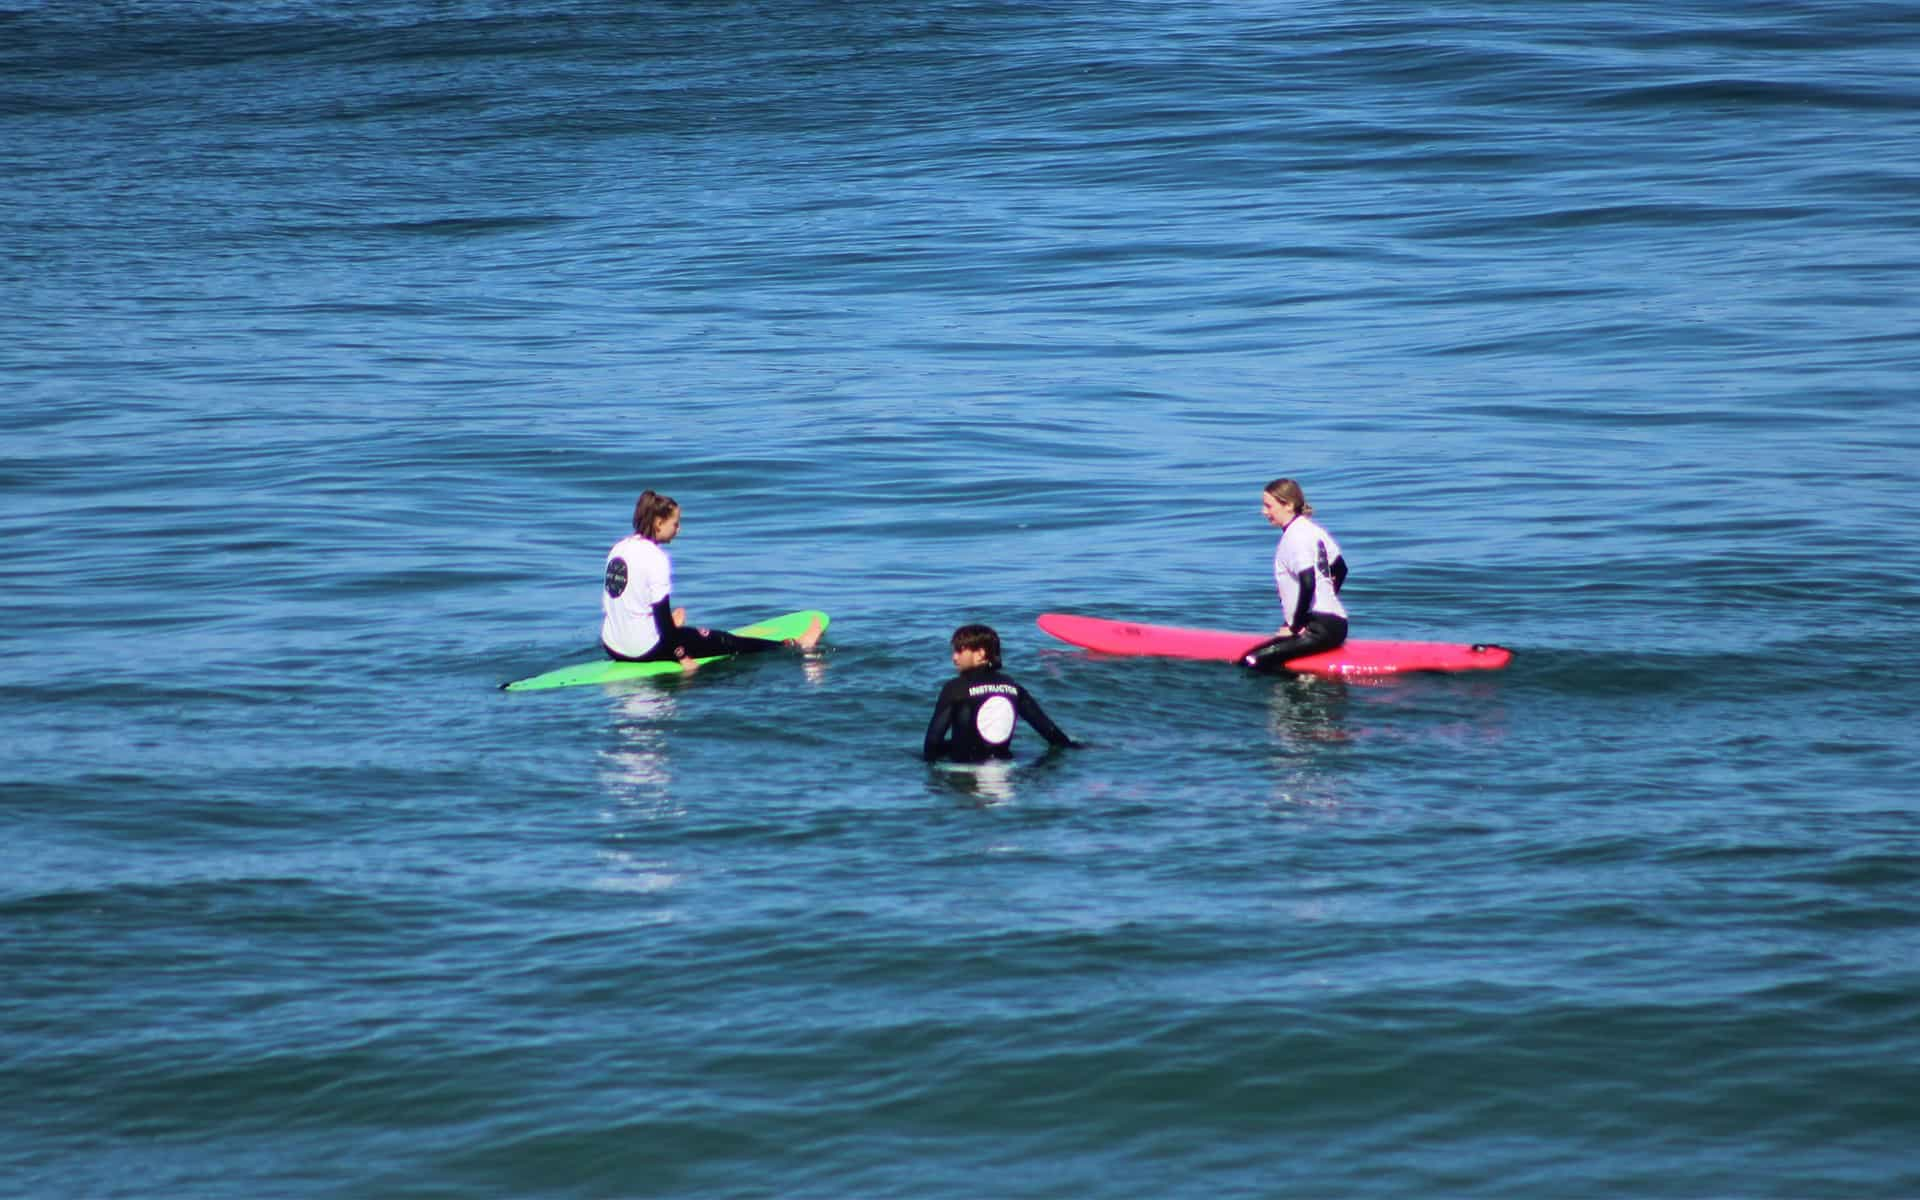 surf camp ericeira - Activities - Guided Surf Tours